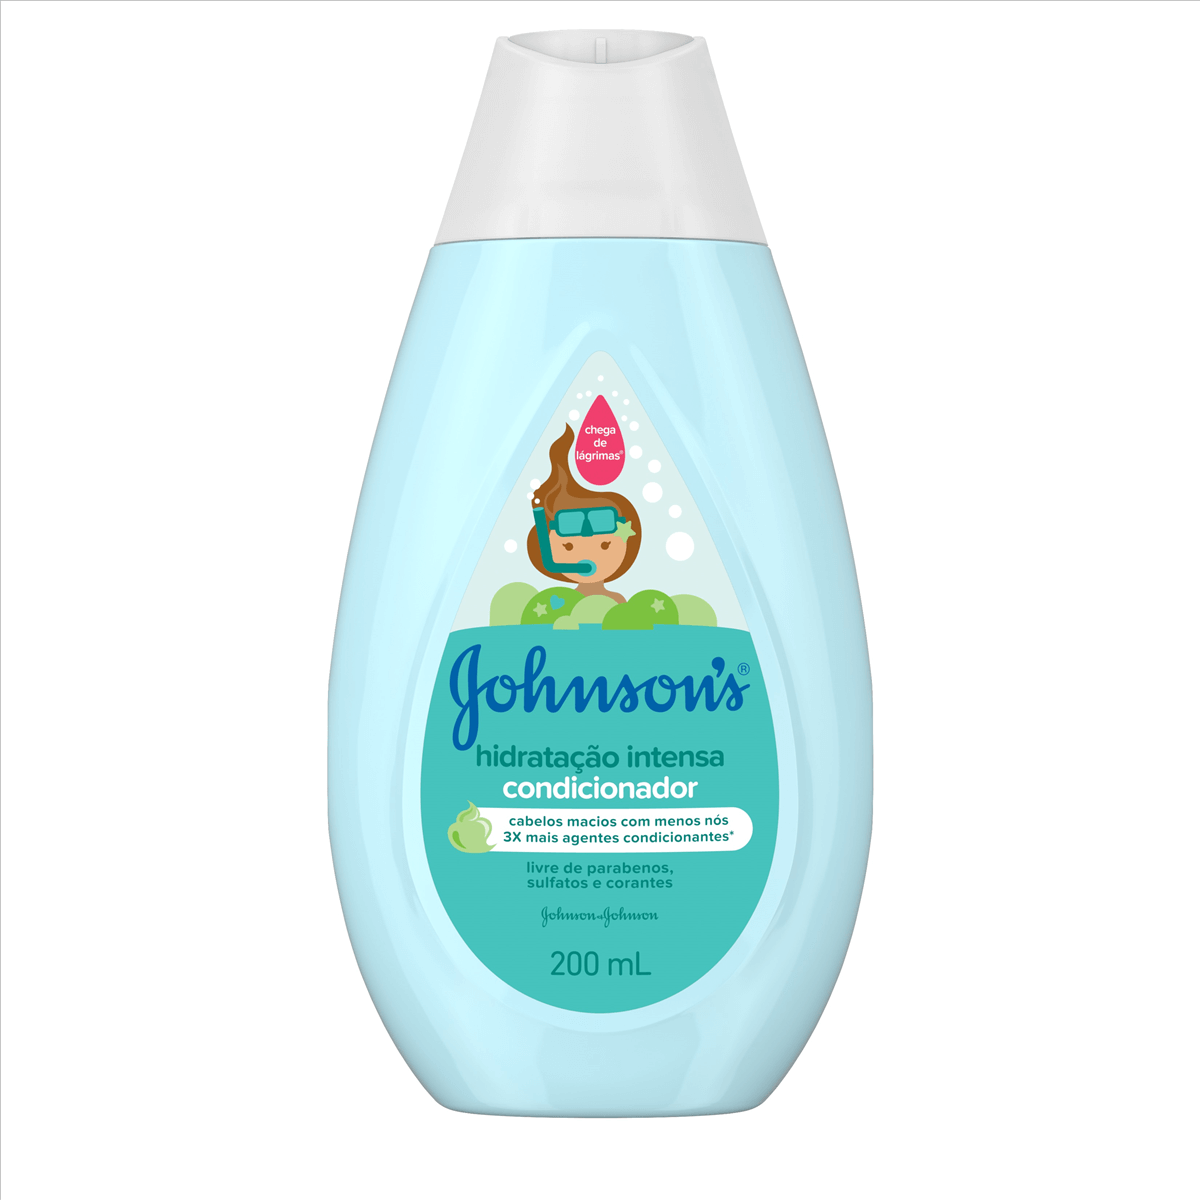 Condicionador Johnson's Hidratação Intensa com 200ml 200ml